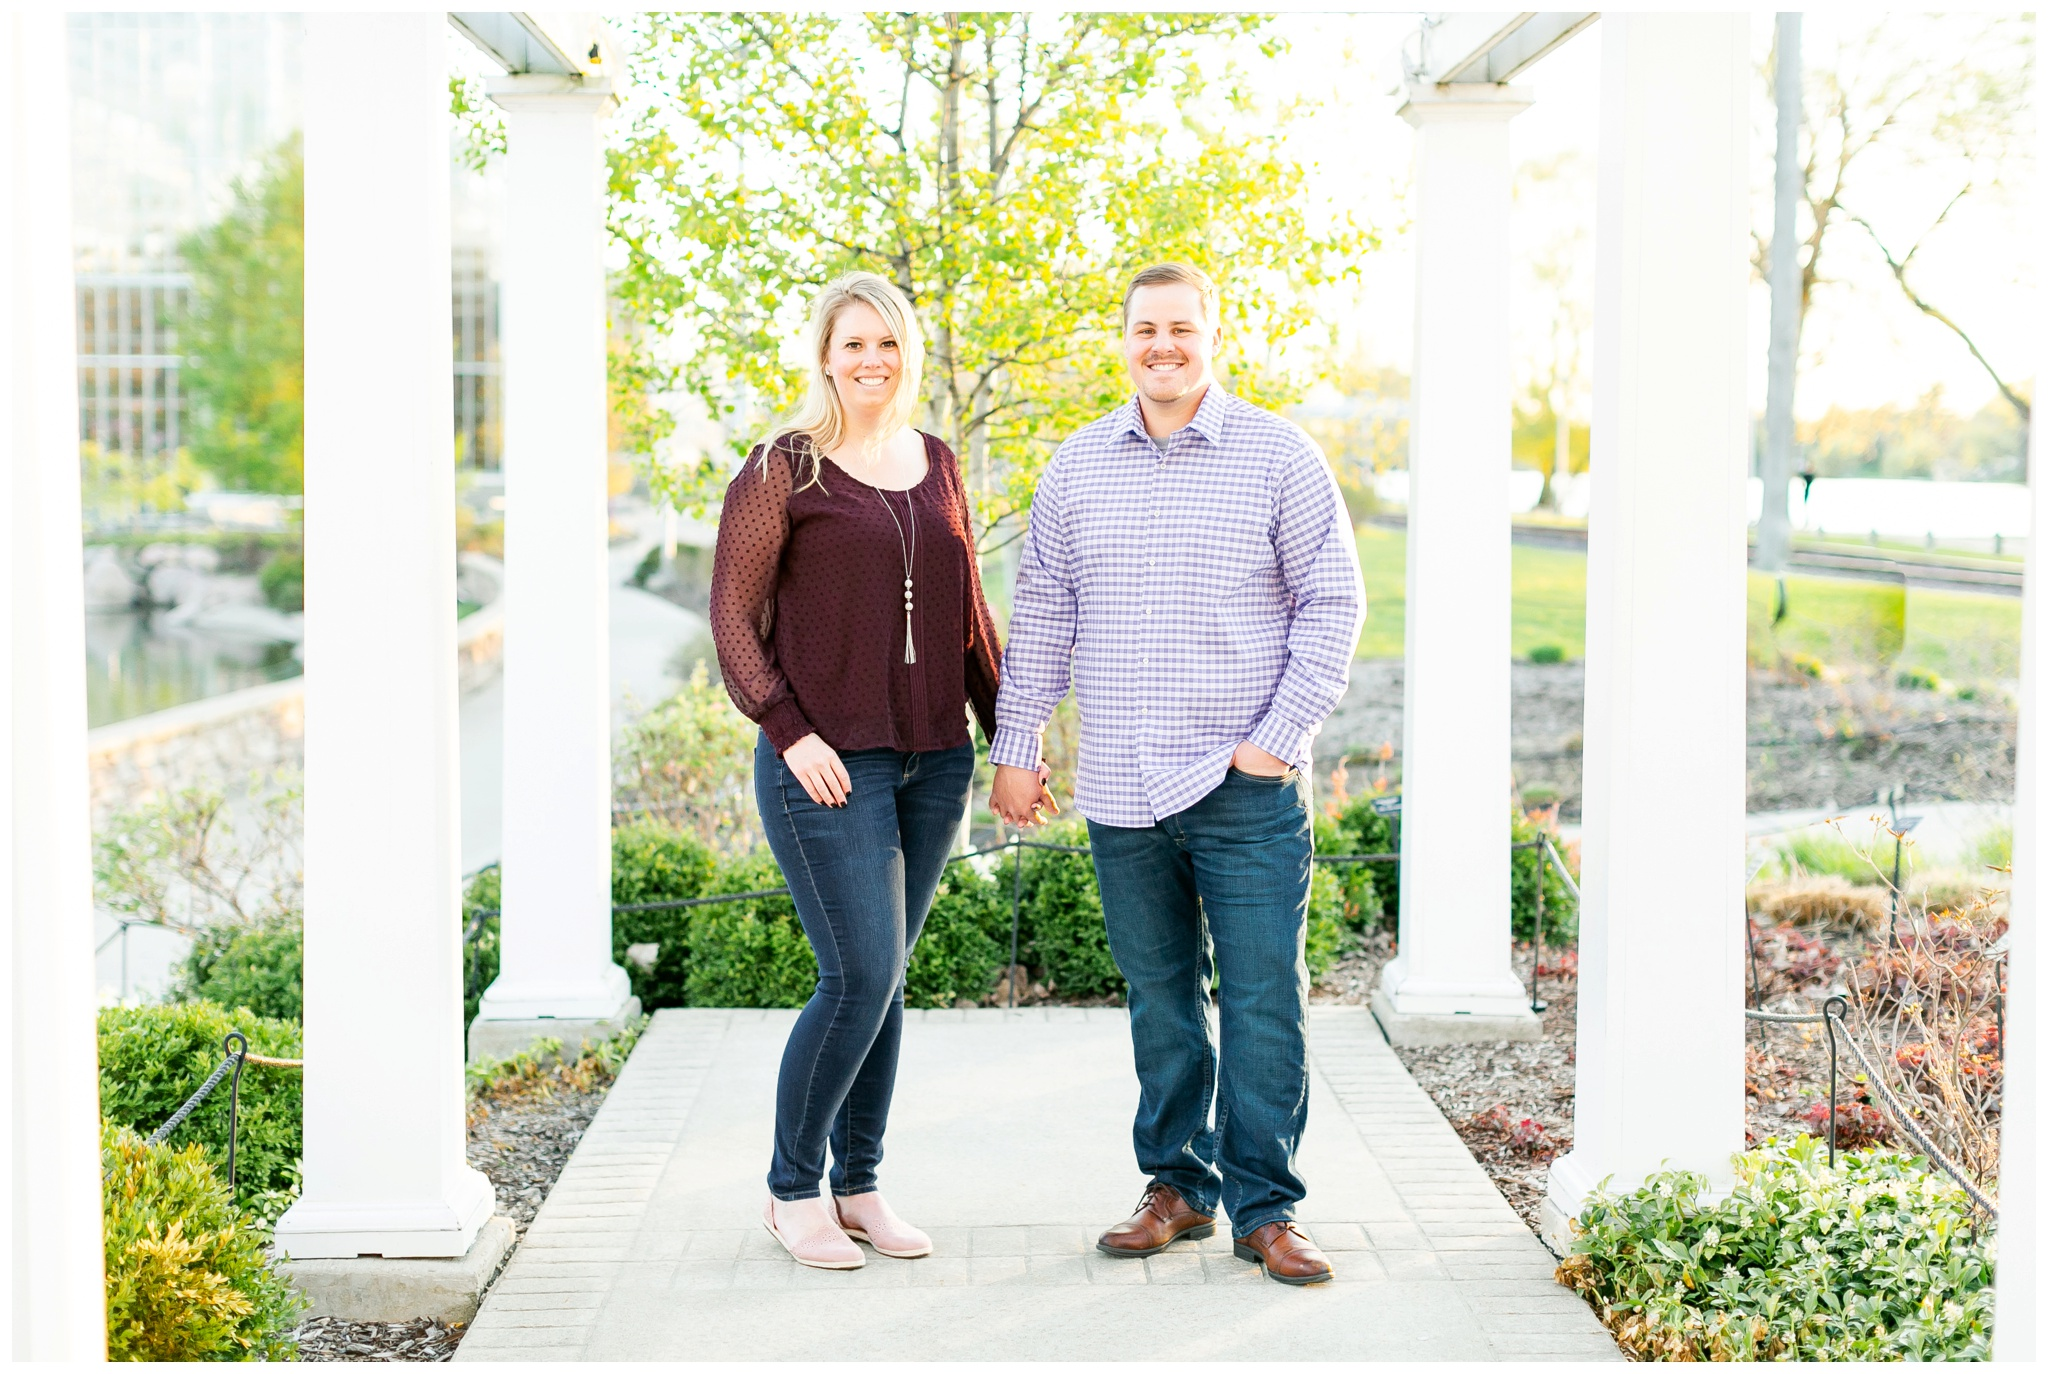 nicholas_conservatory_engagement_session_rockford_illinois_caynay_photo_3000.jpg